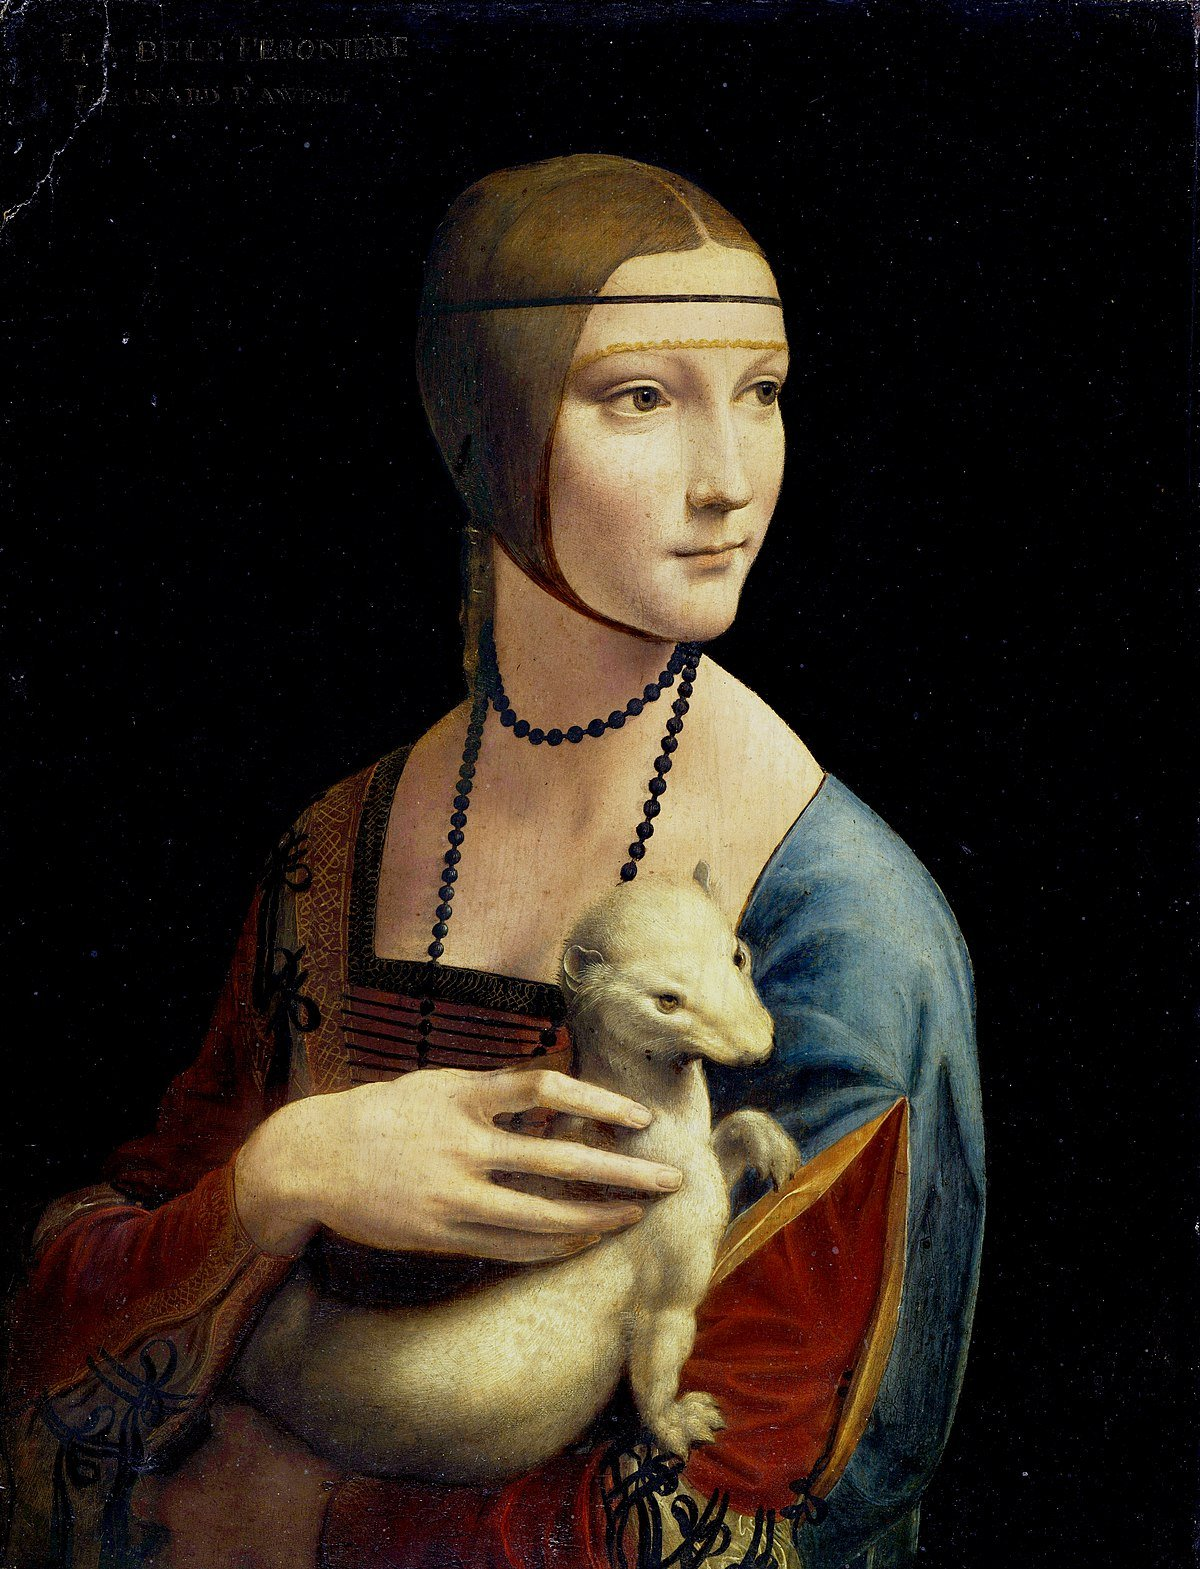 Leonardo da Vinci, The Lady with an Ermine, london fine art studios blog, art blog, art stories, art blog lonodn, art classes london, art workshops london